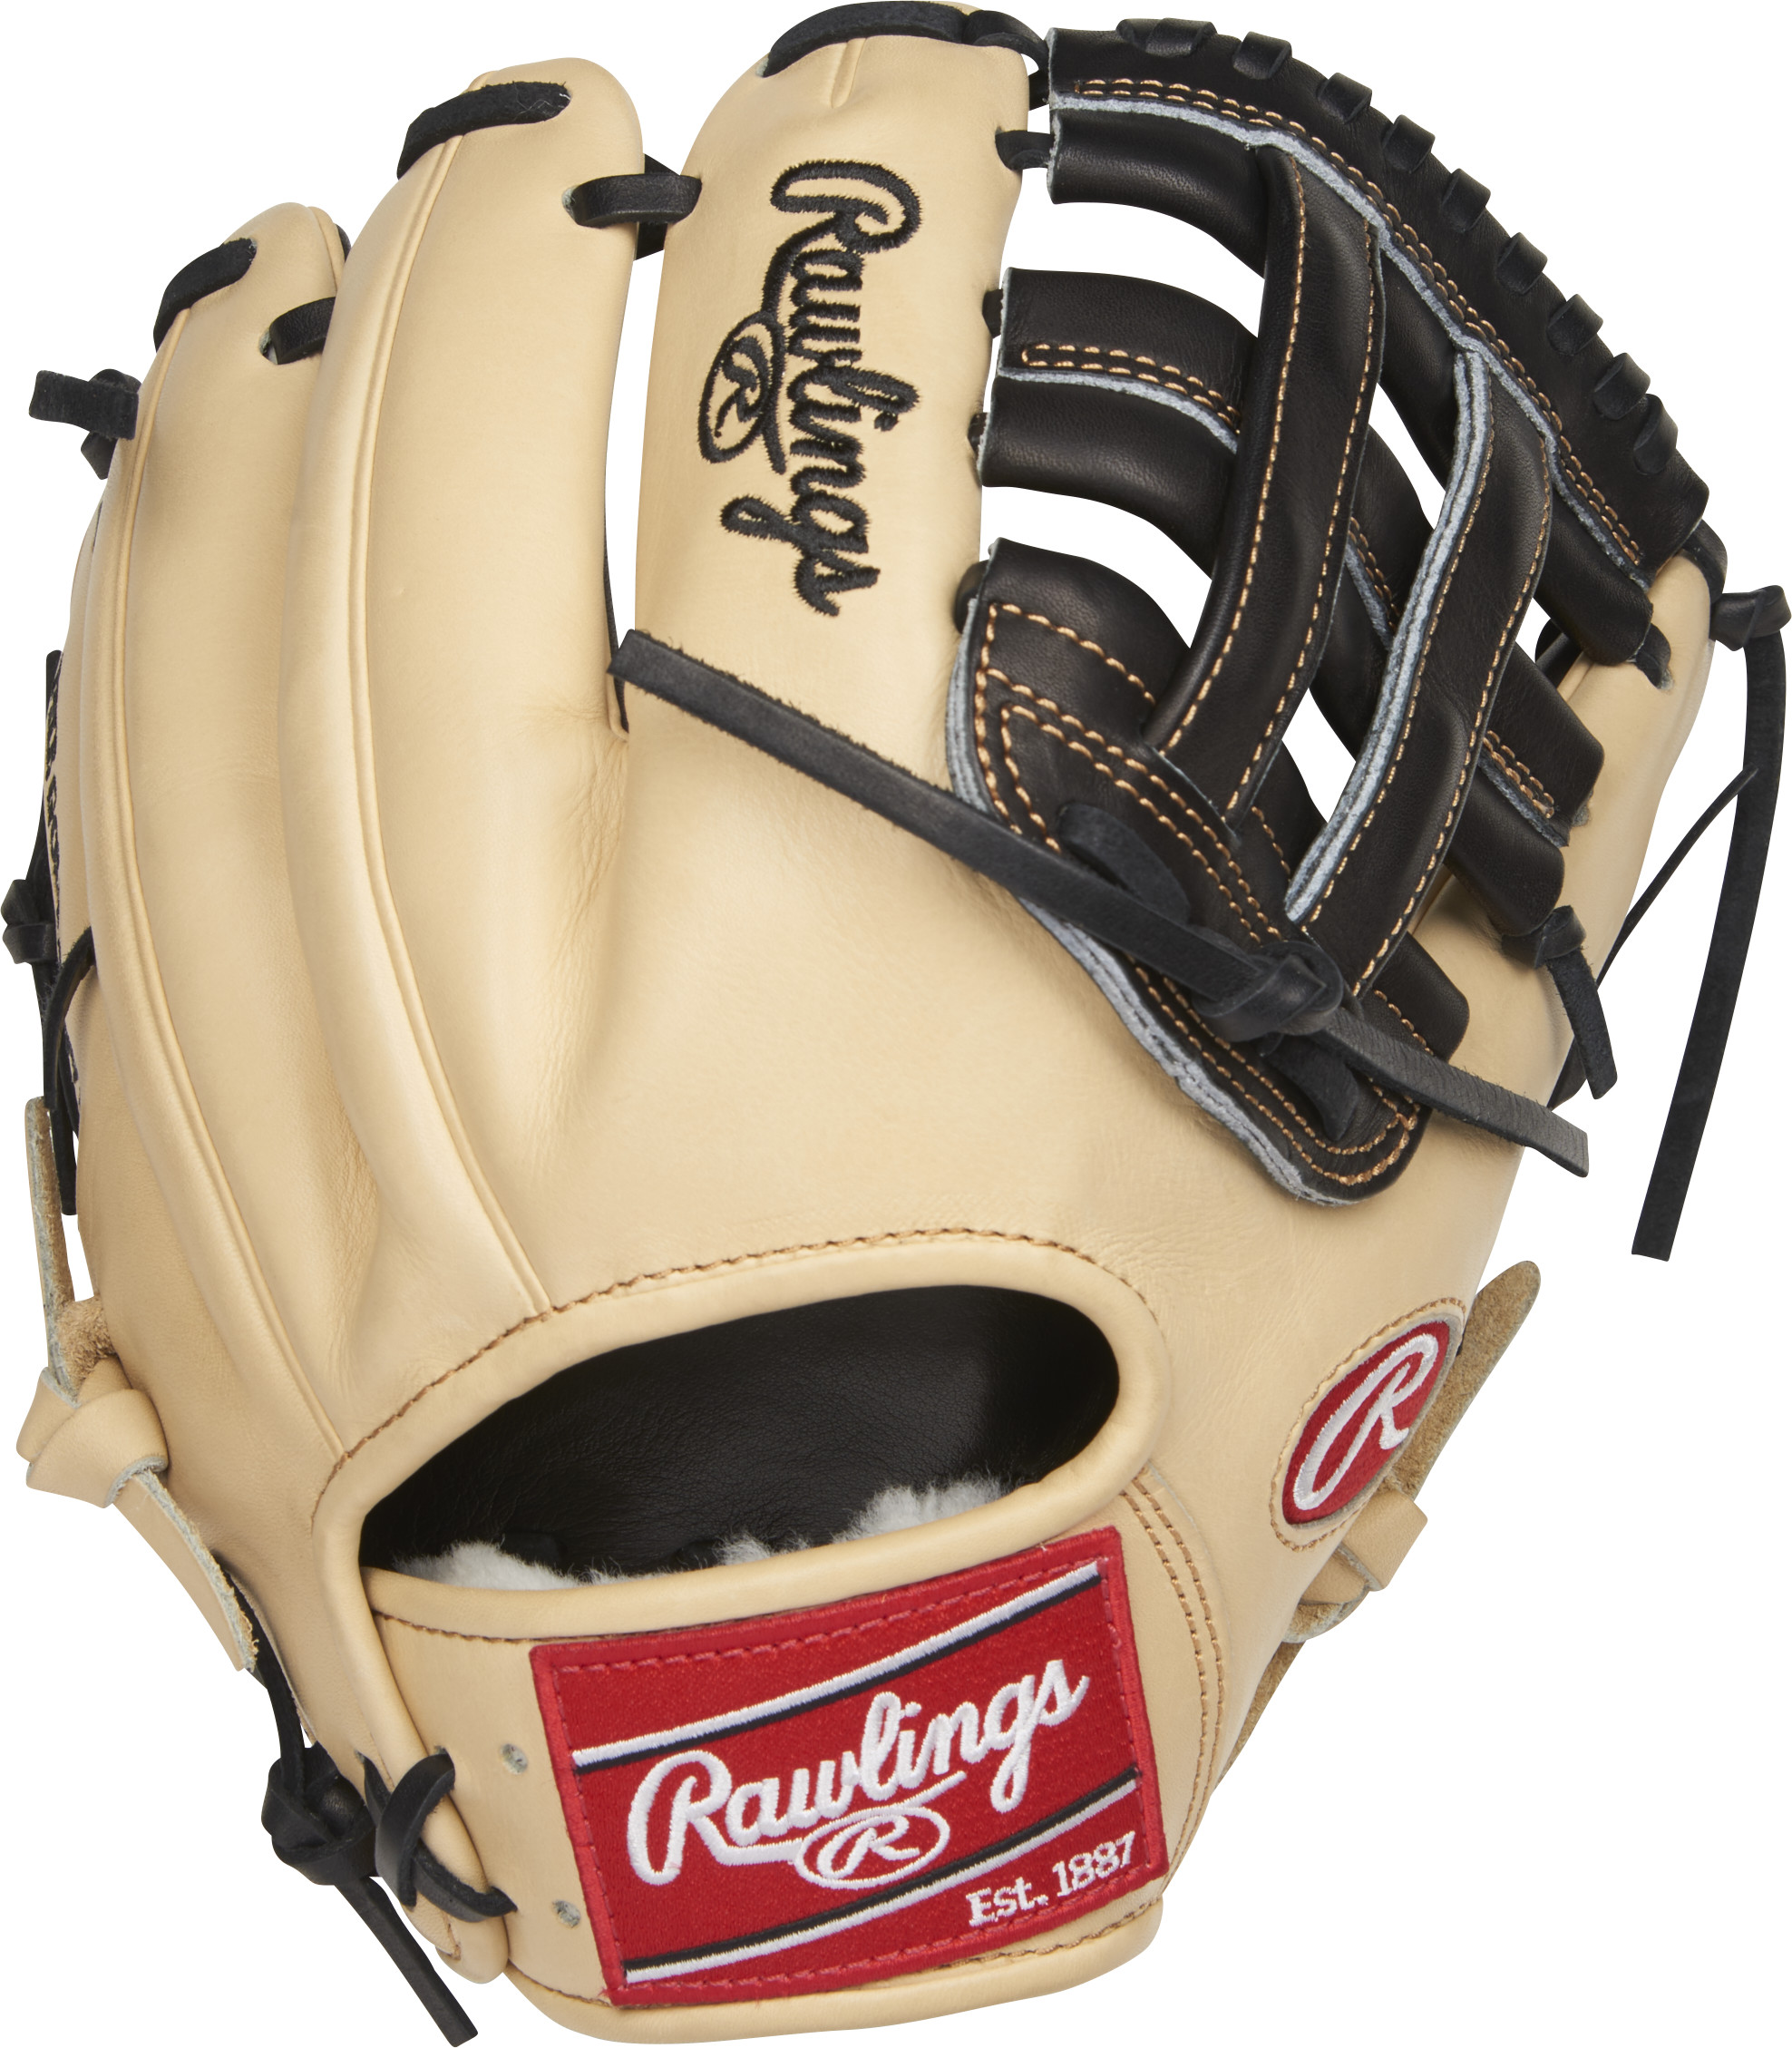 http://www.bestbatdeals.com/images/gloves/rawlings/PROS204-6BC-2.jpg